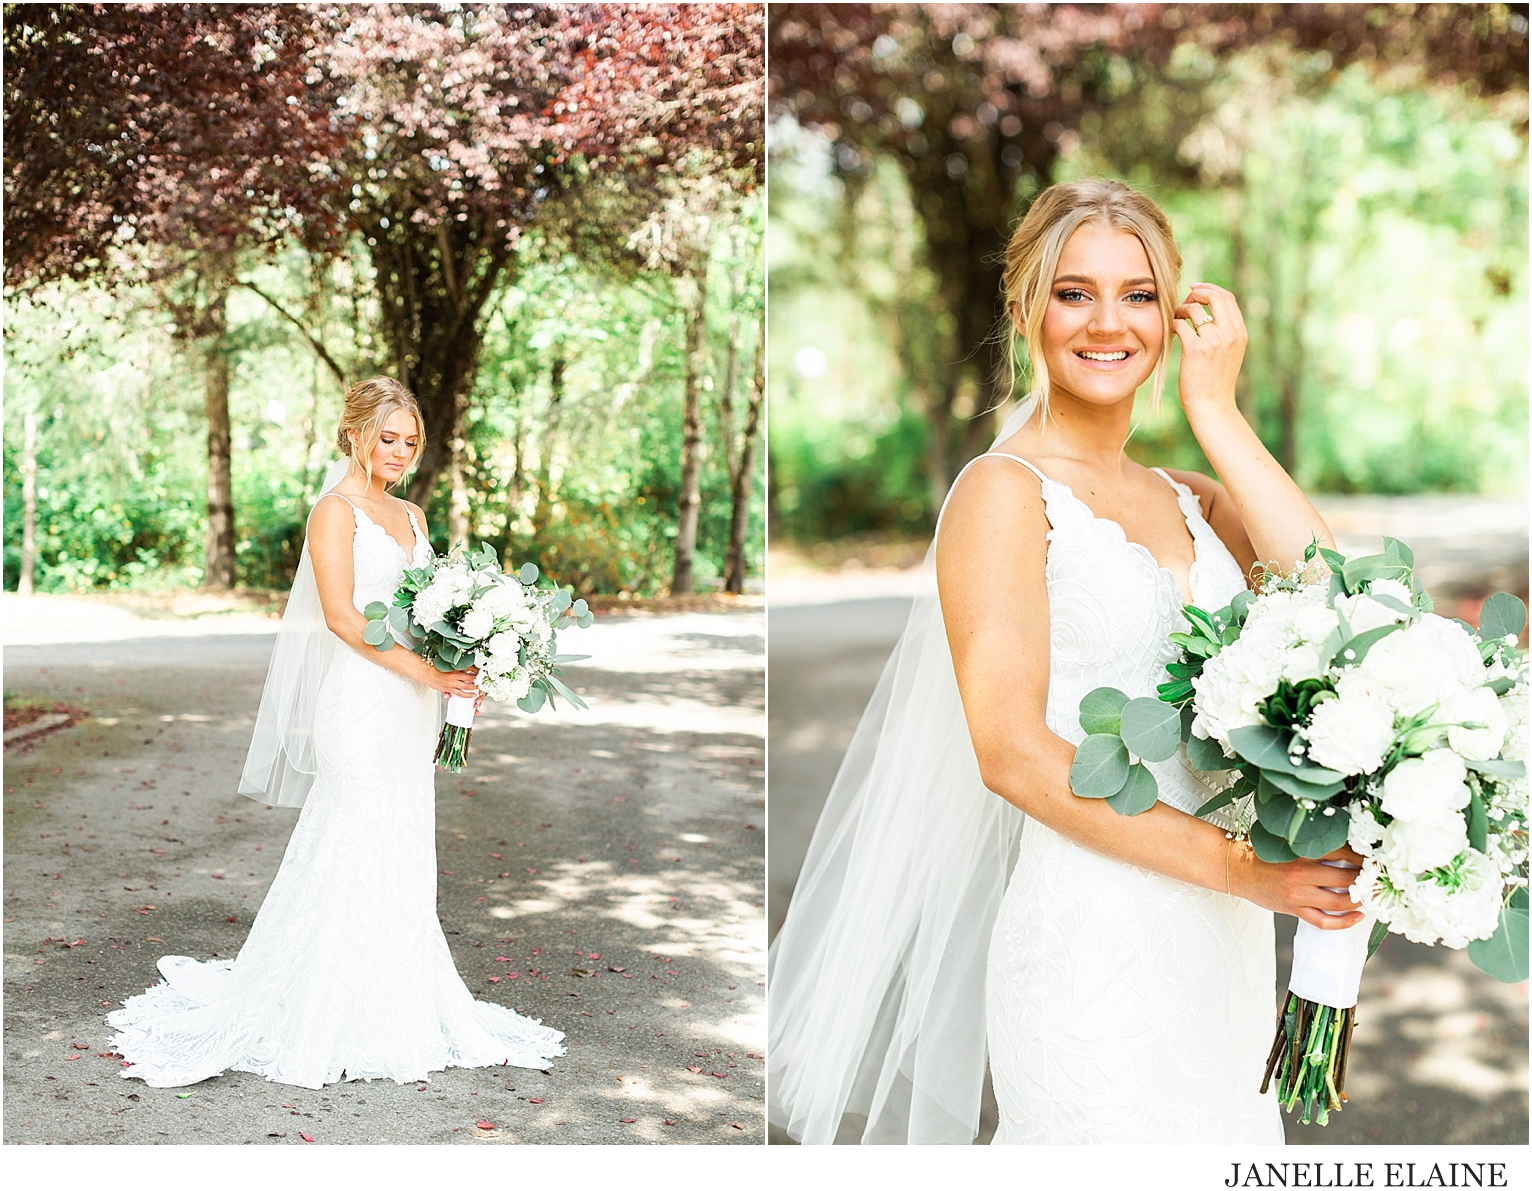 Tricia and Nathan Goddard Wedding-Getting Ready Photos-Janelle Elaine Photography-170.jpg